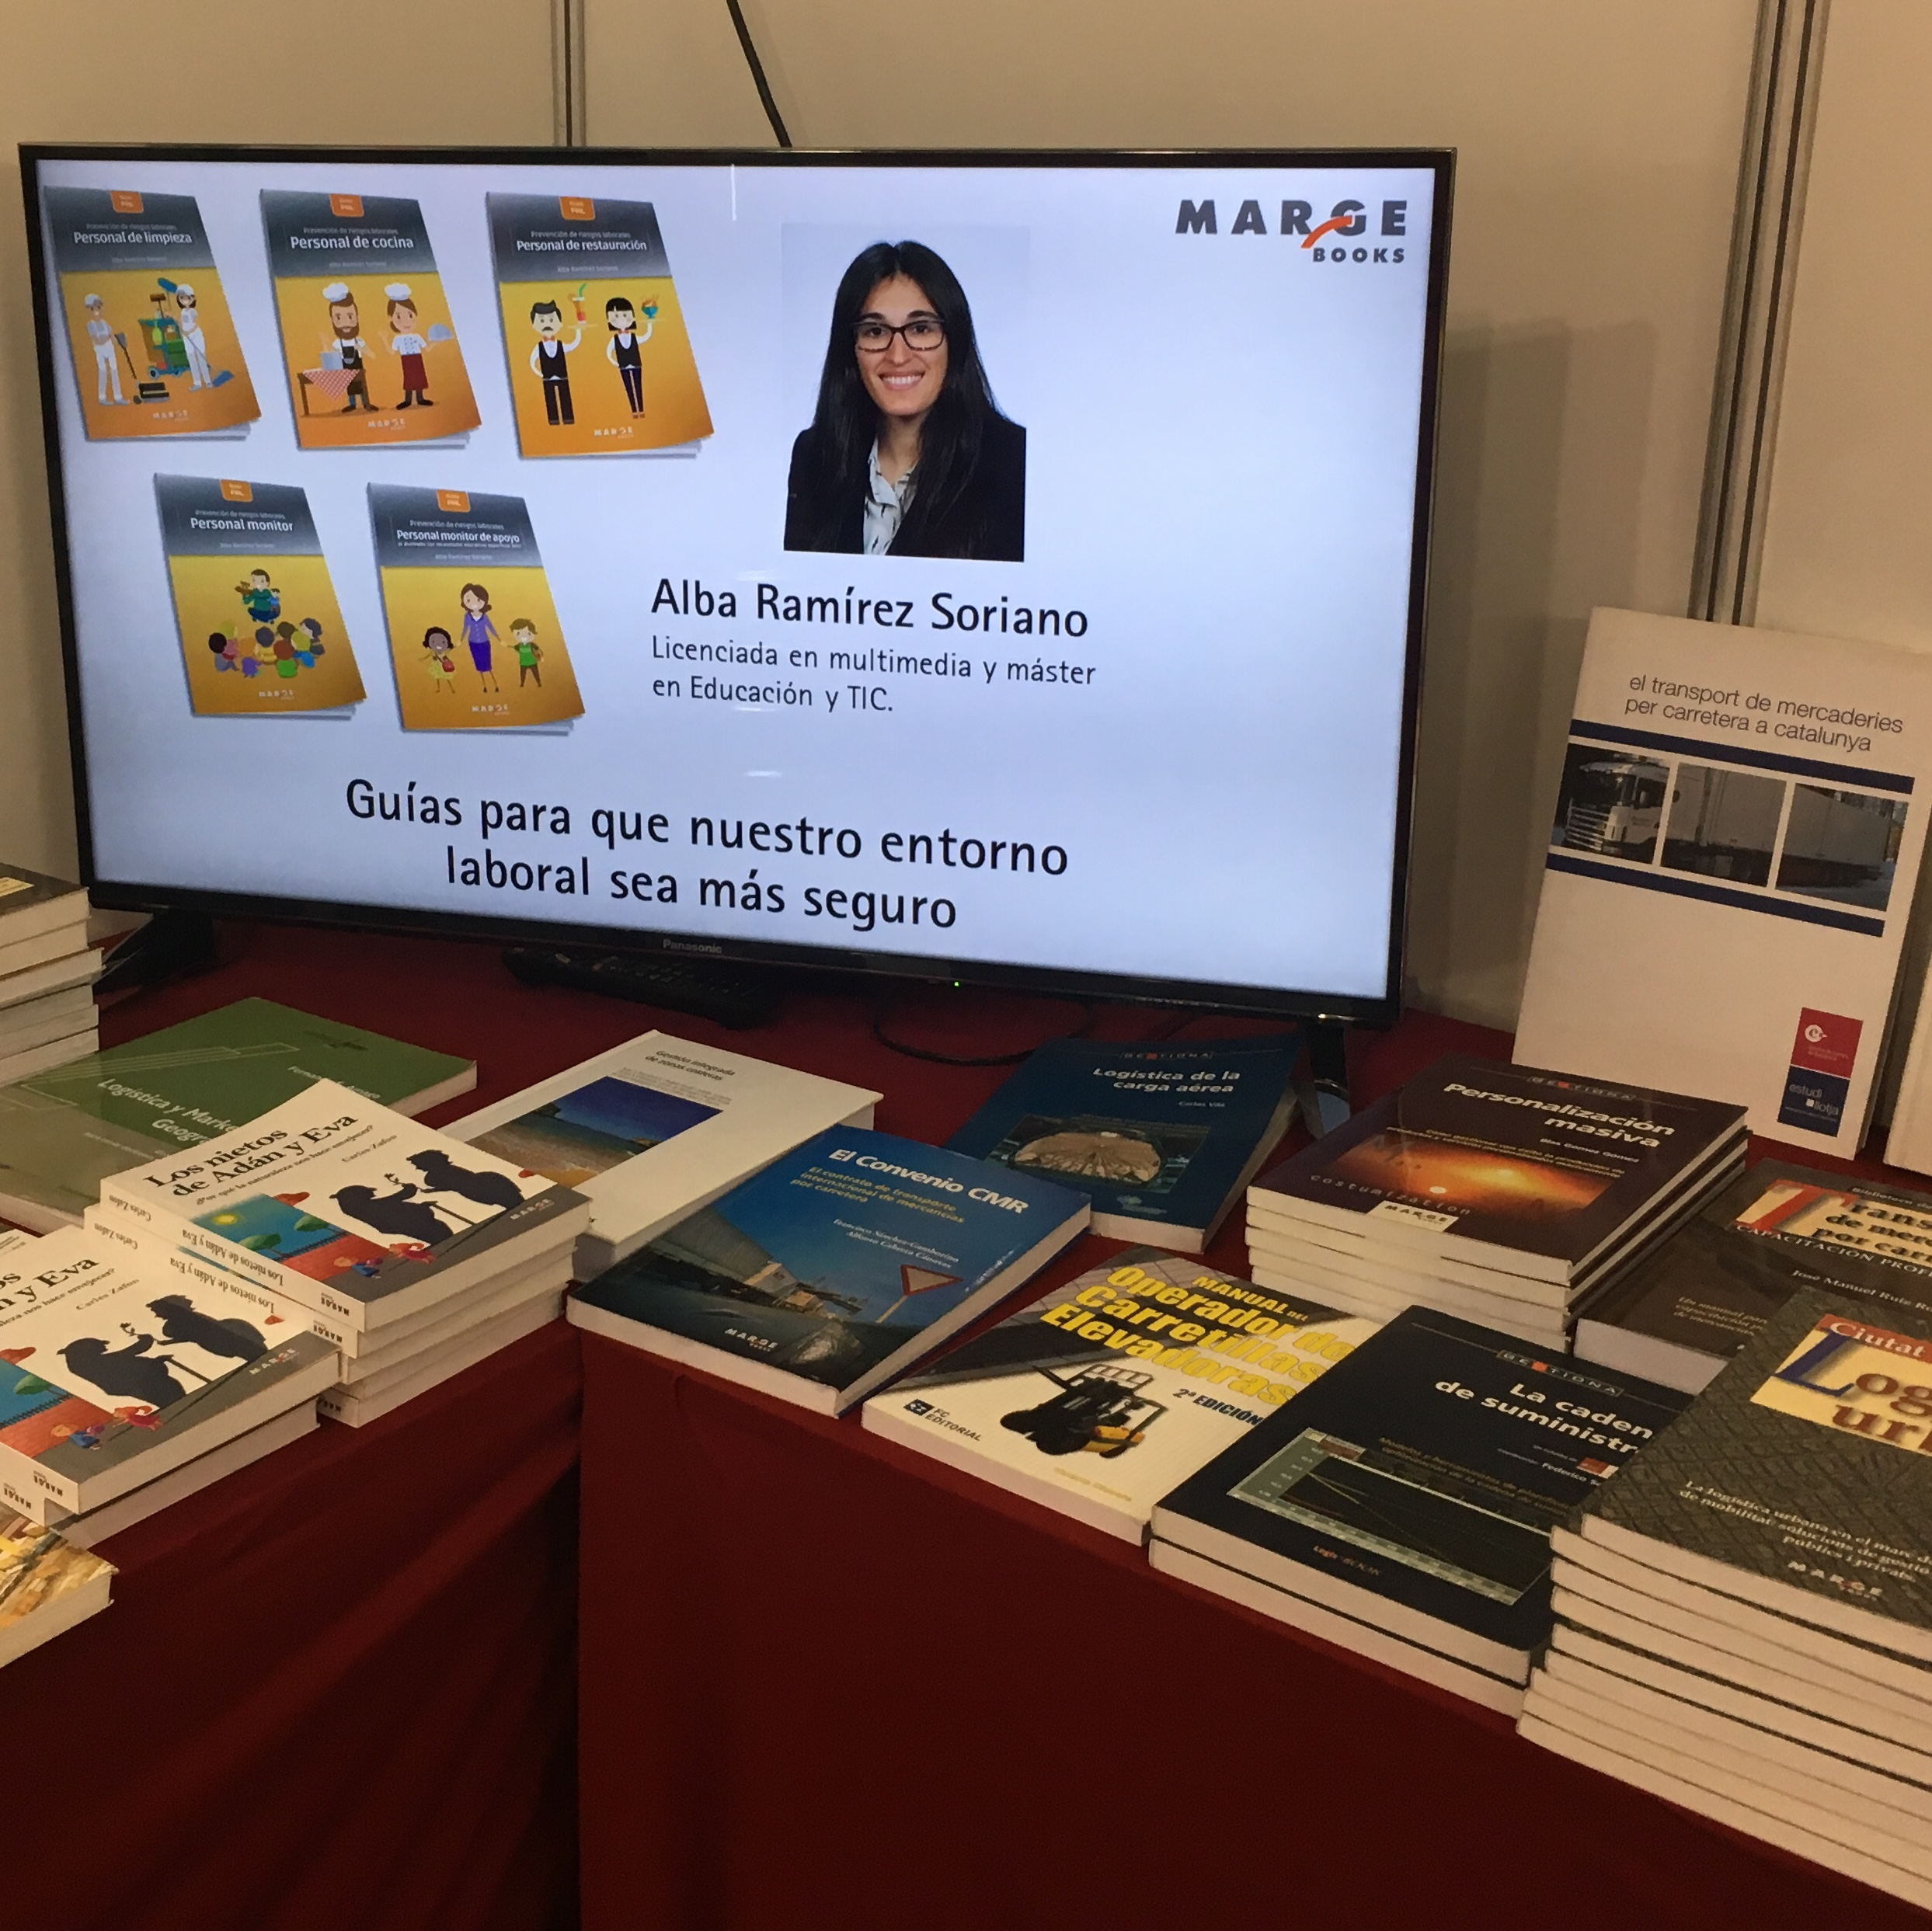 Learnwus + Marge BooksSalón Internacional Logistica SIL 2019